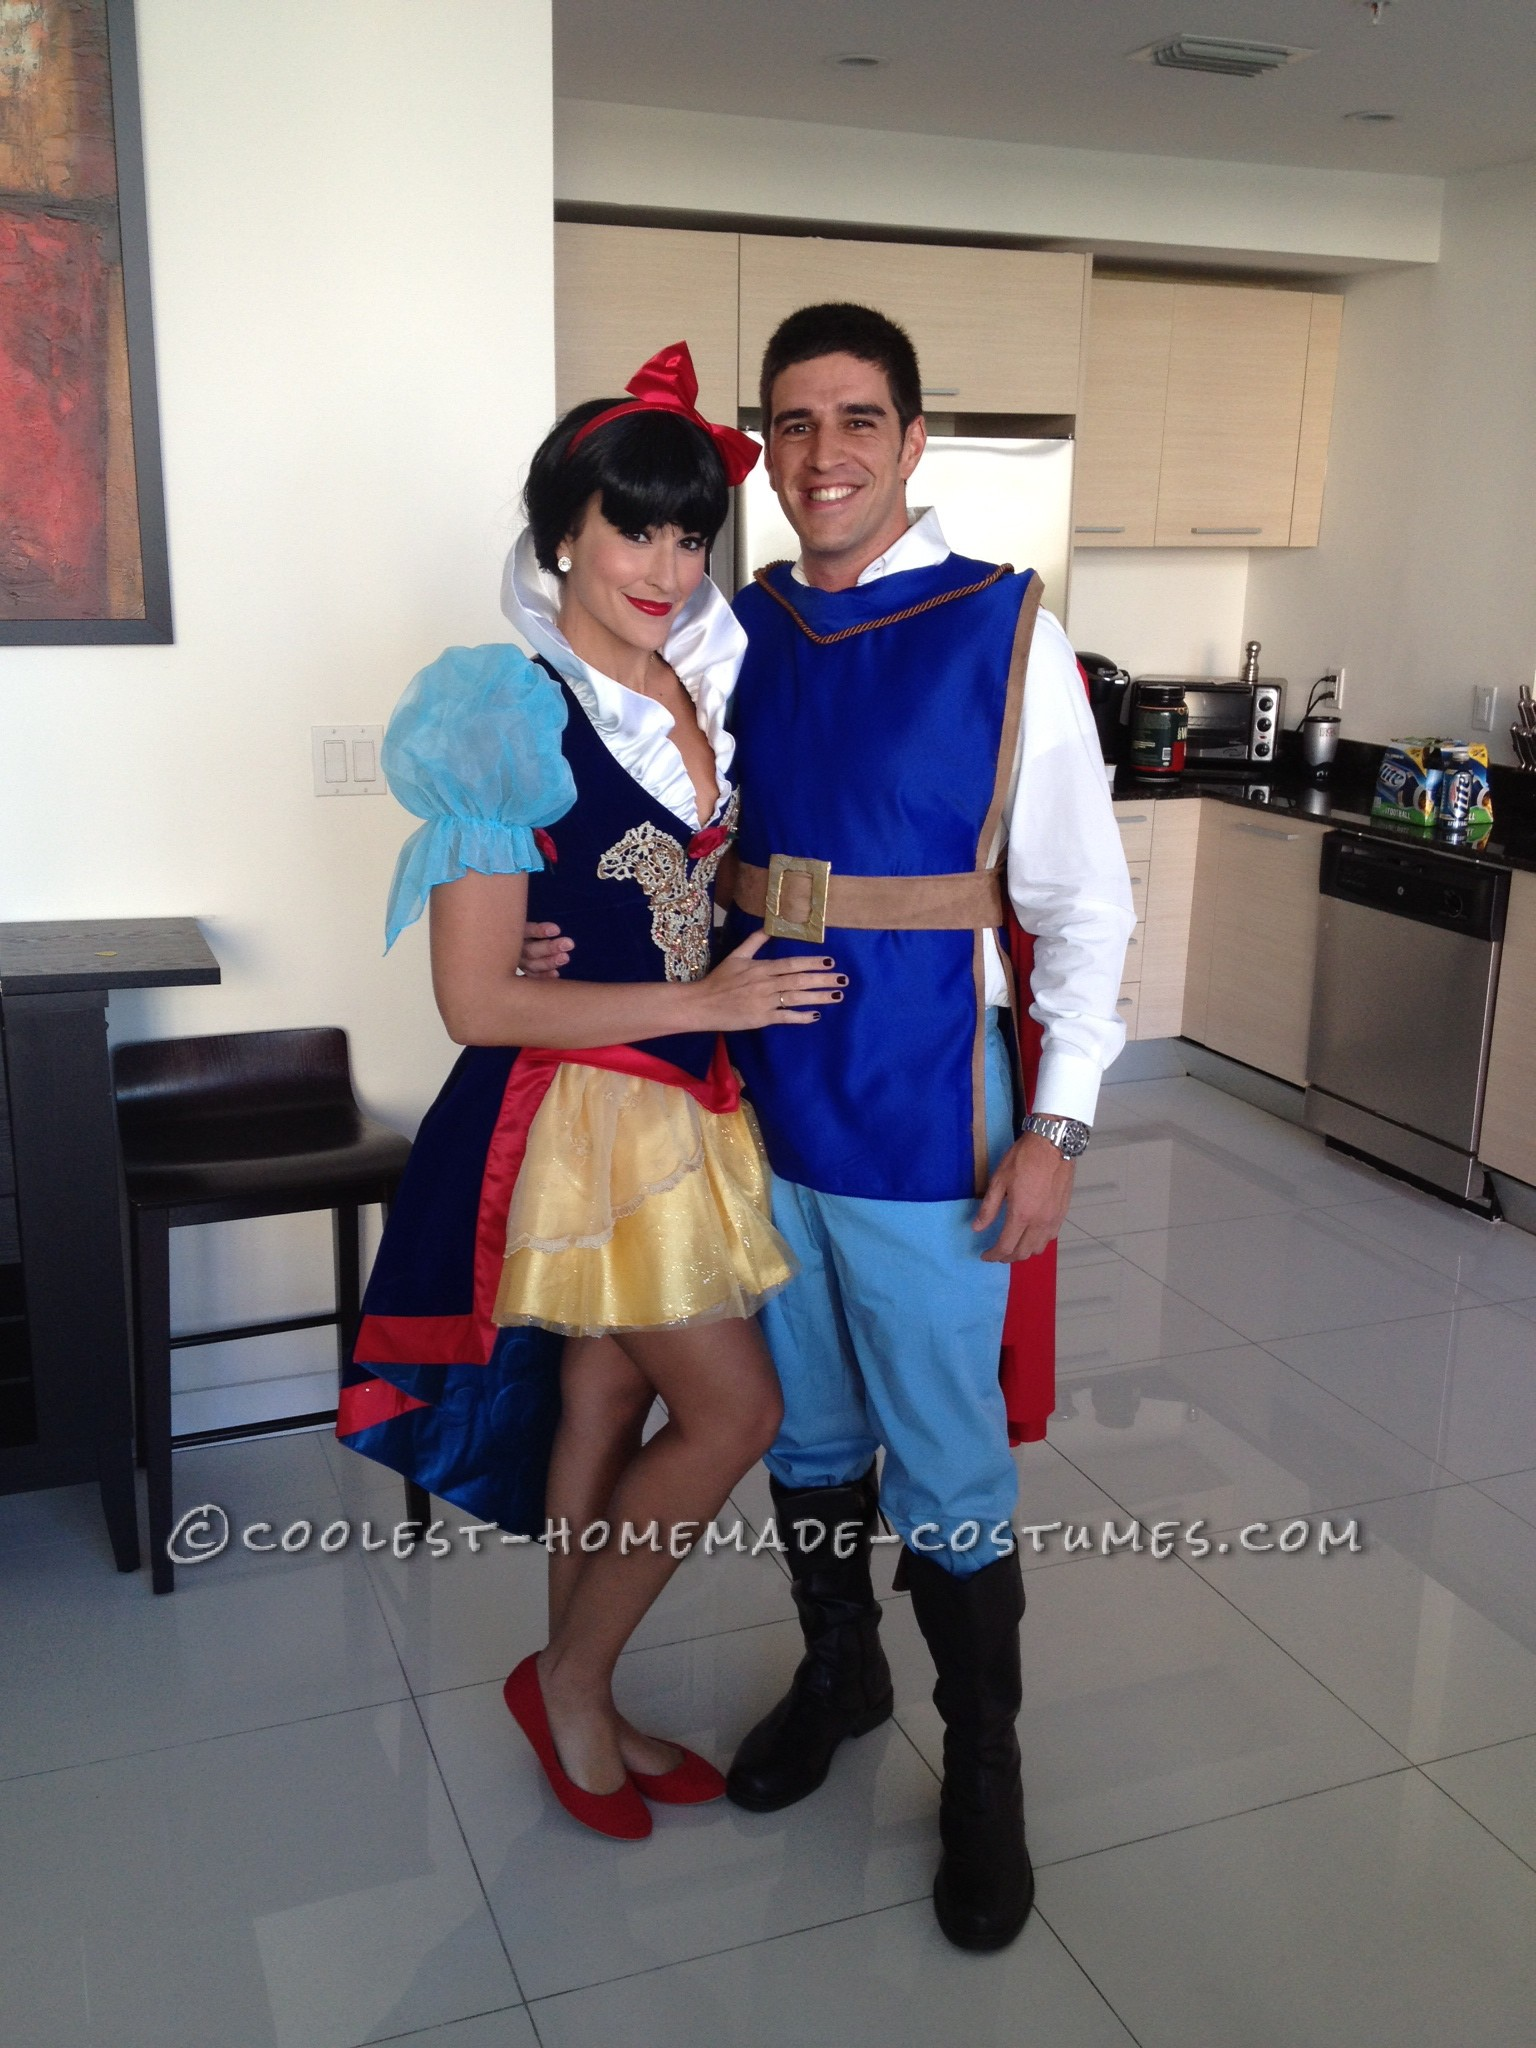 Prince Charming 100% Homemade Costume and Snow White (Purchased Online)